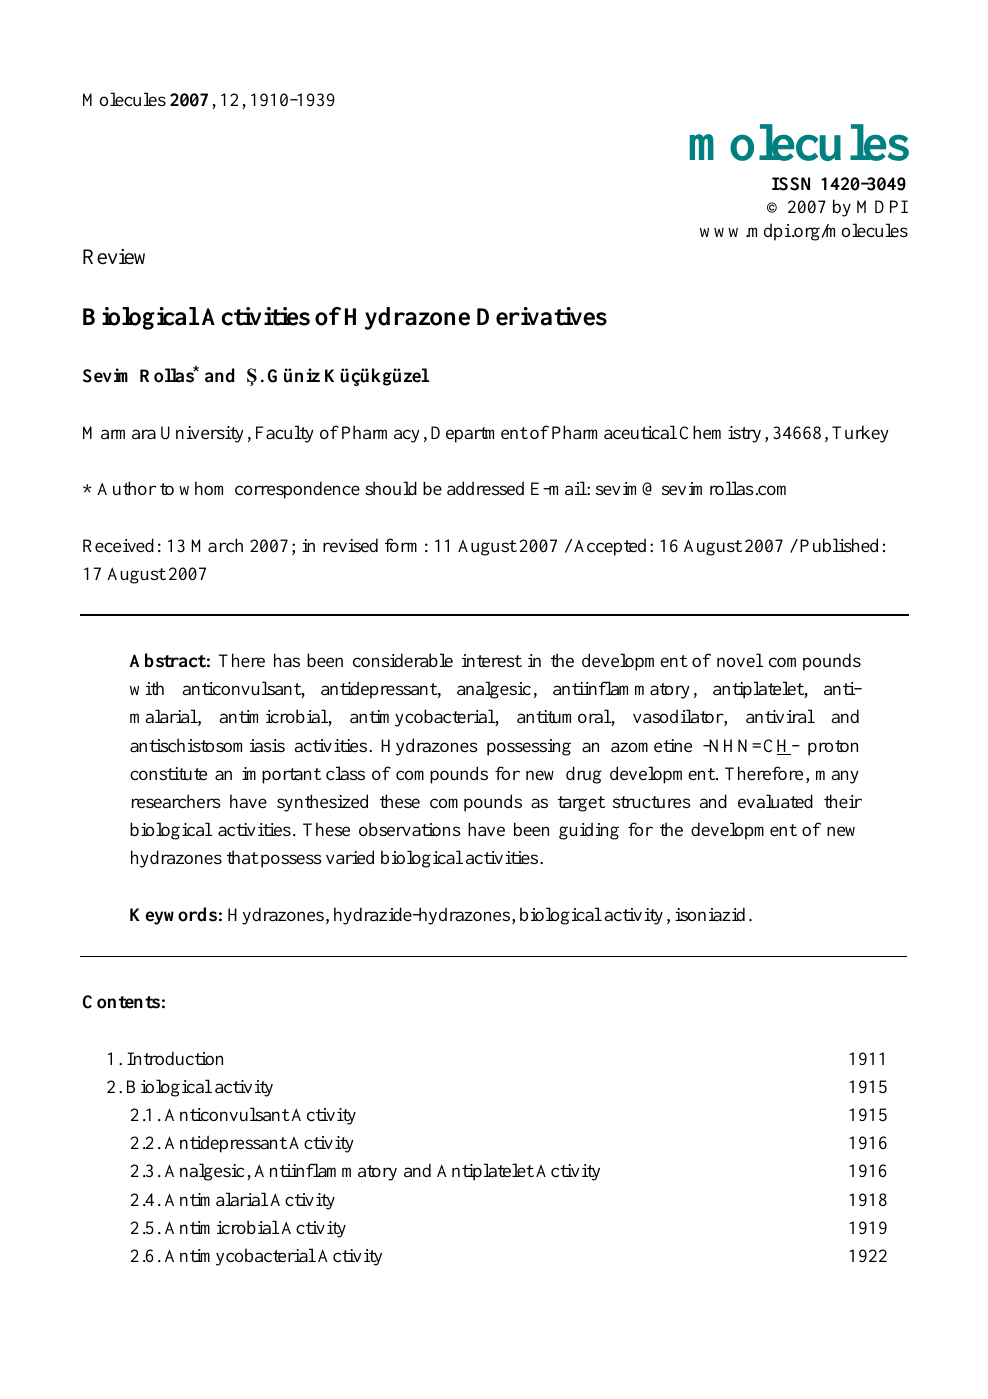 Biological Activities of Hydrazone Derivatives – topic of